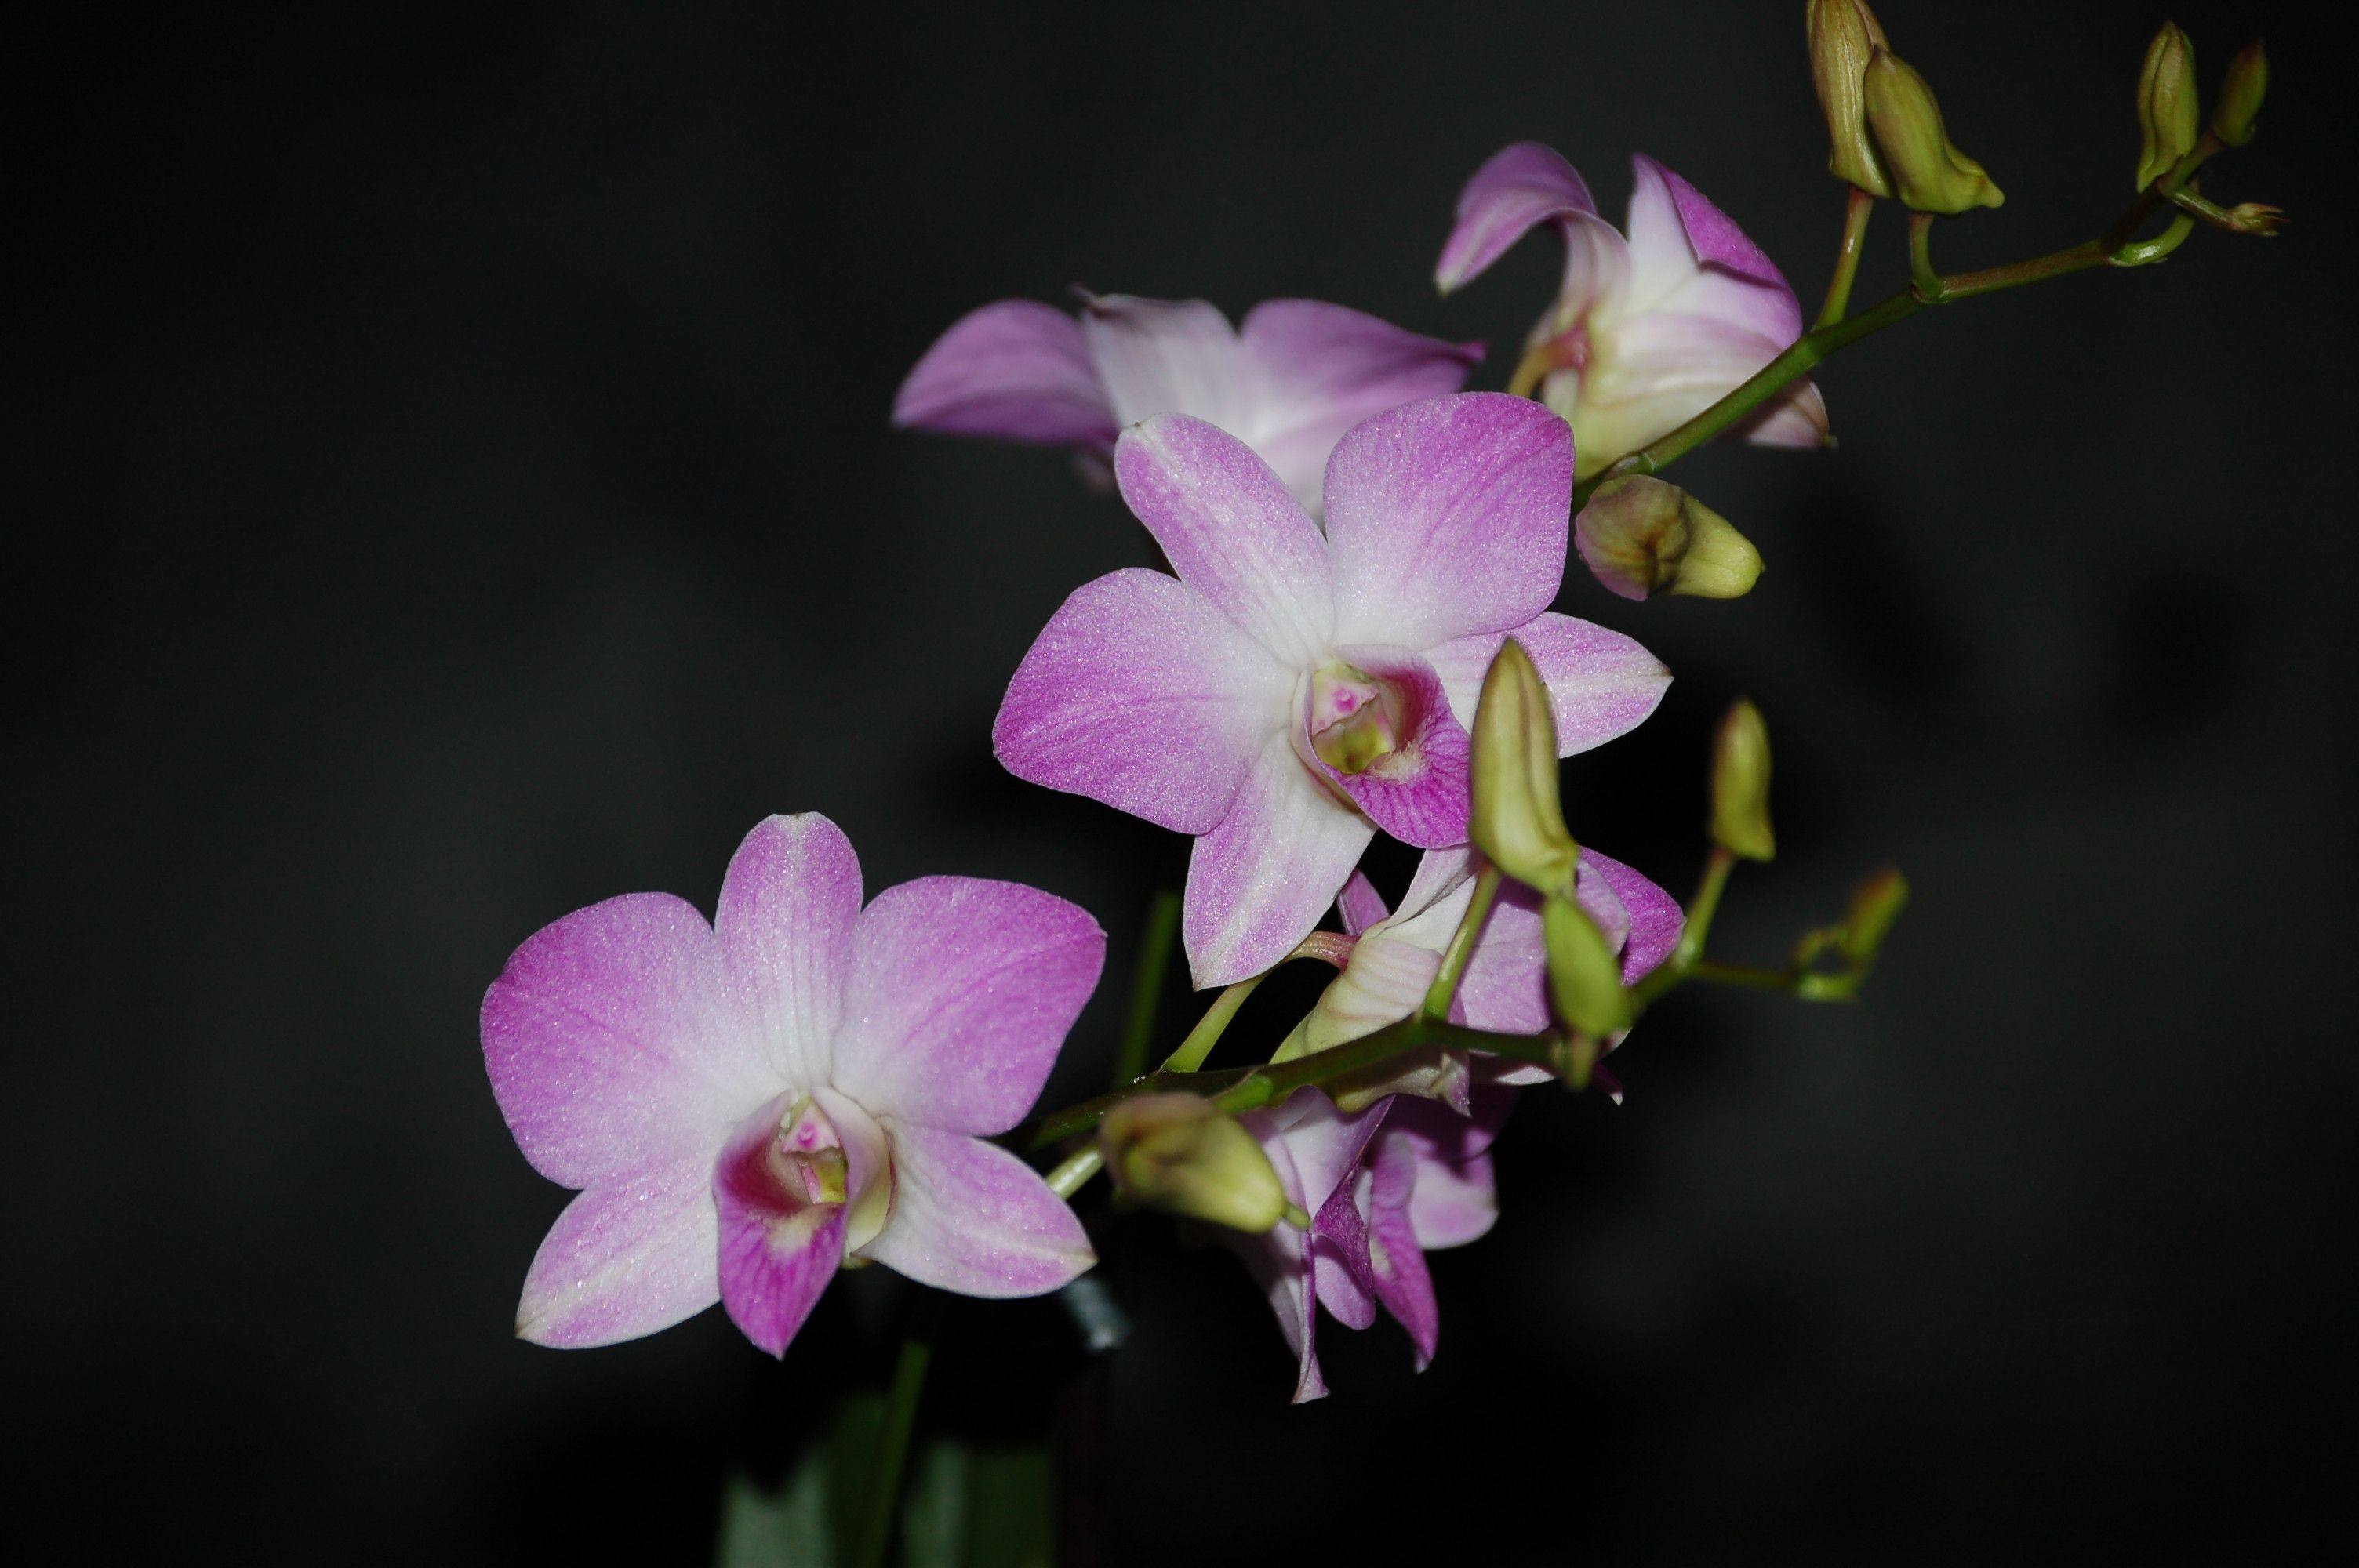 Dendrobium Compactum Hybride Orchideen Wichmann De Highest Horticultural Quality And Experience Since 1897 In 2020 Botanical Orchids Flower Spike Beautiful Orchids